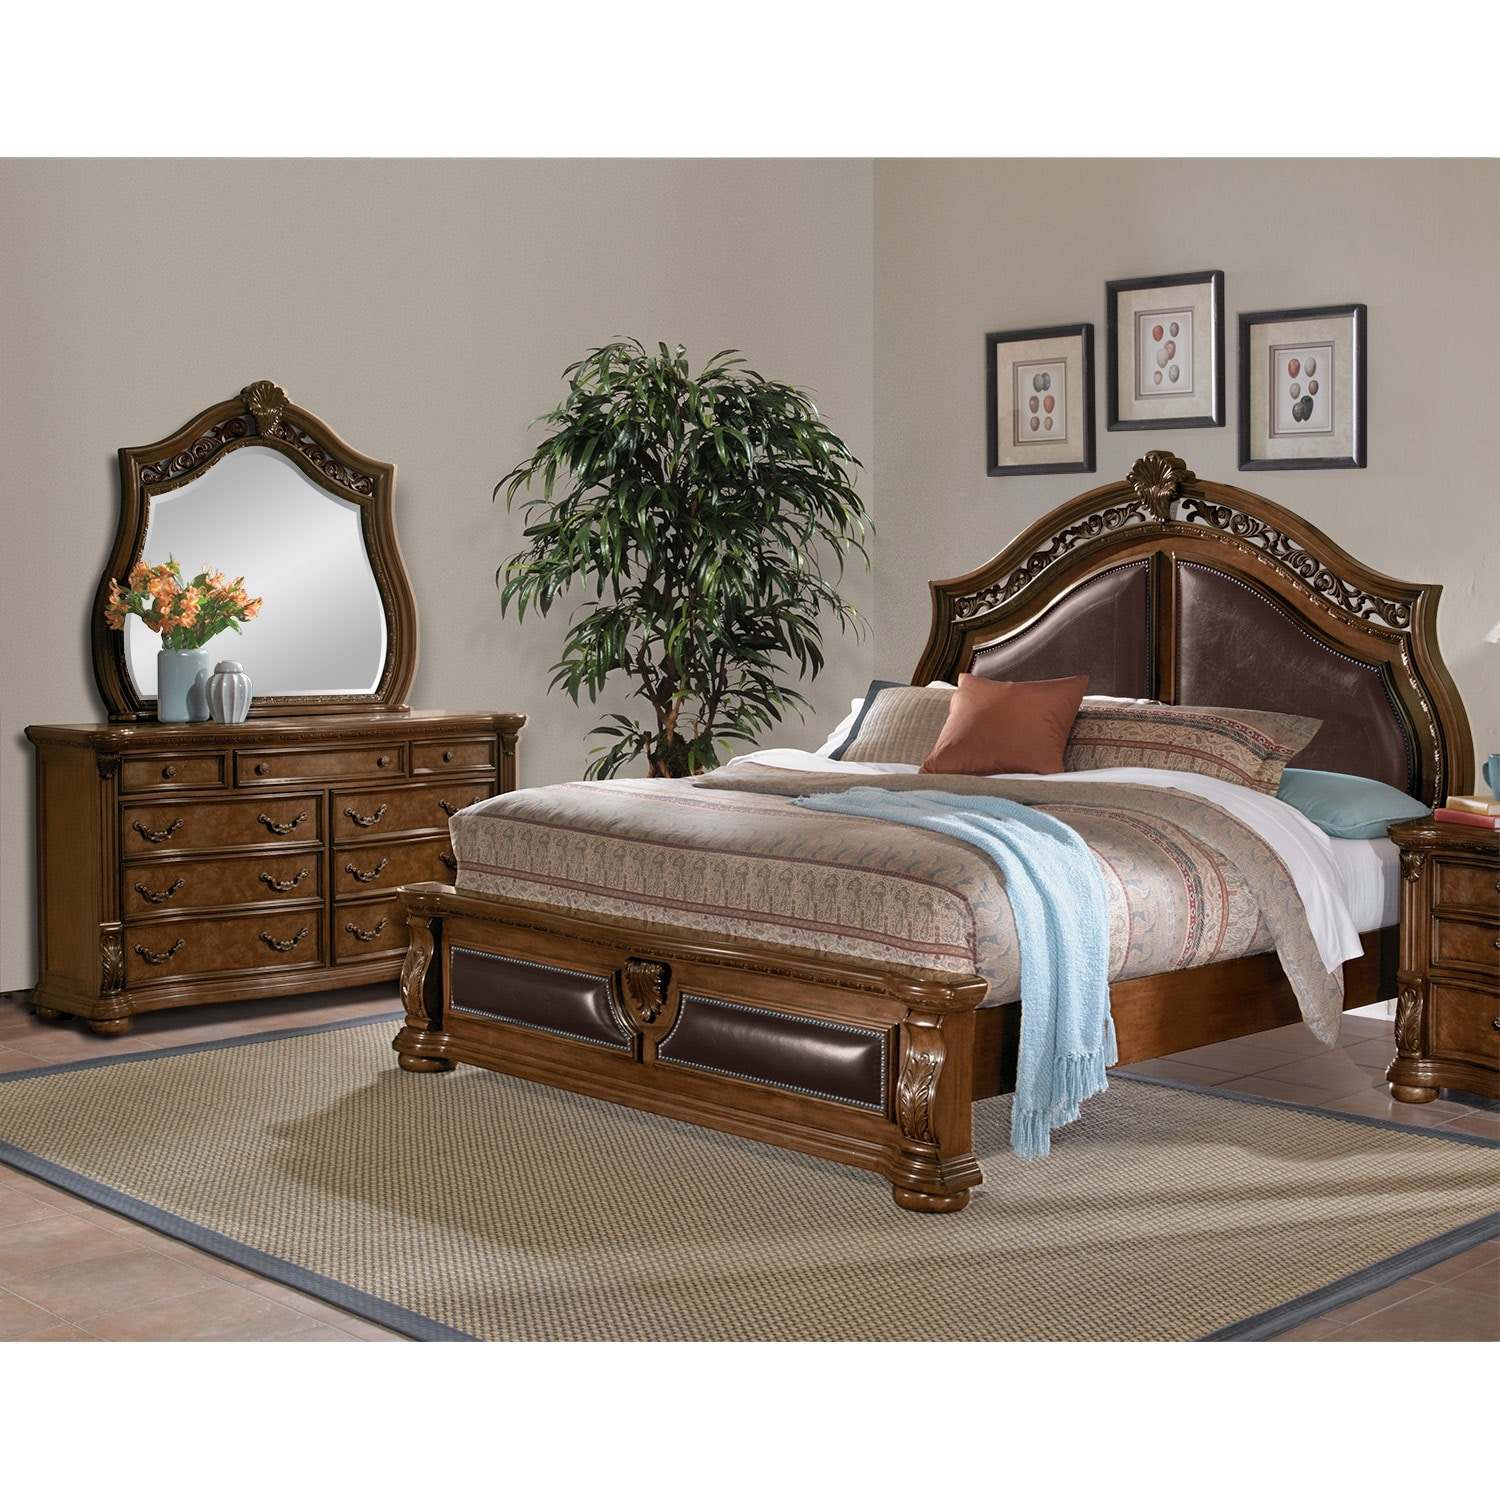 Pulaski Bedroom Furniture Morocco 5 Piece Queen Bedroom Set Pecan Value City Furniture